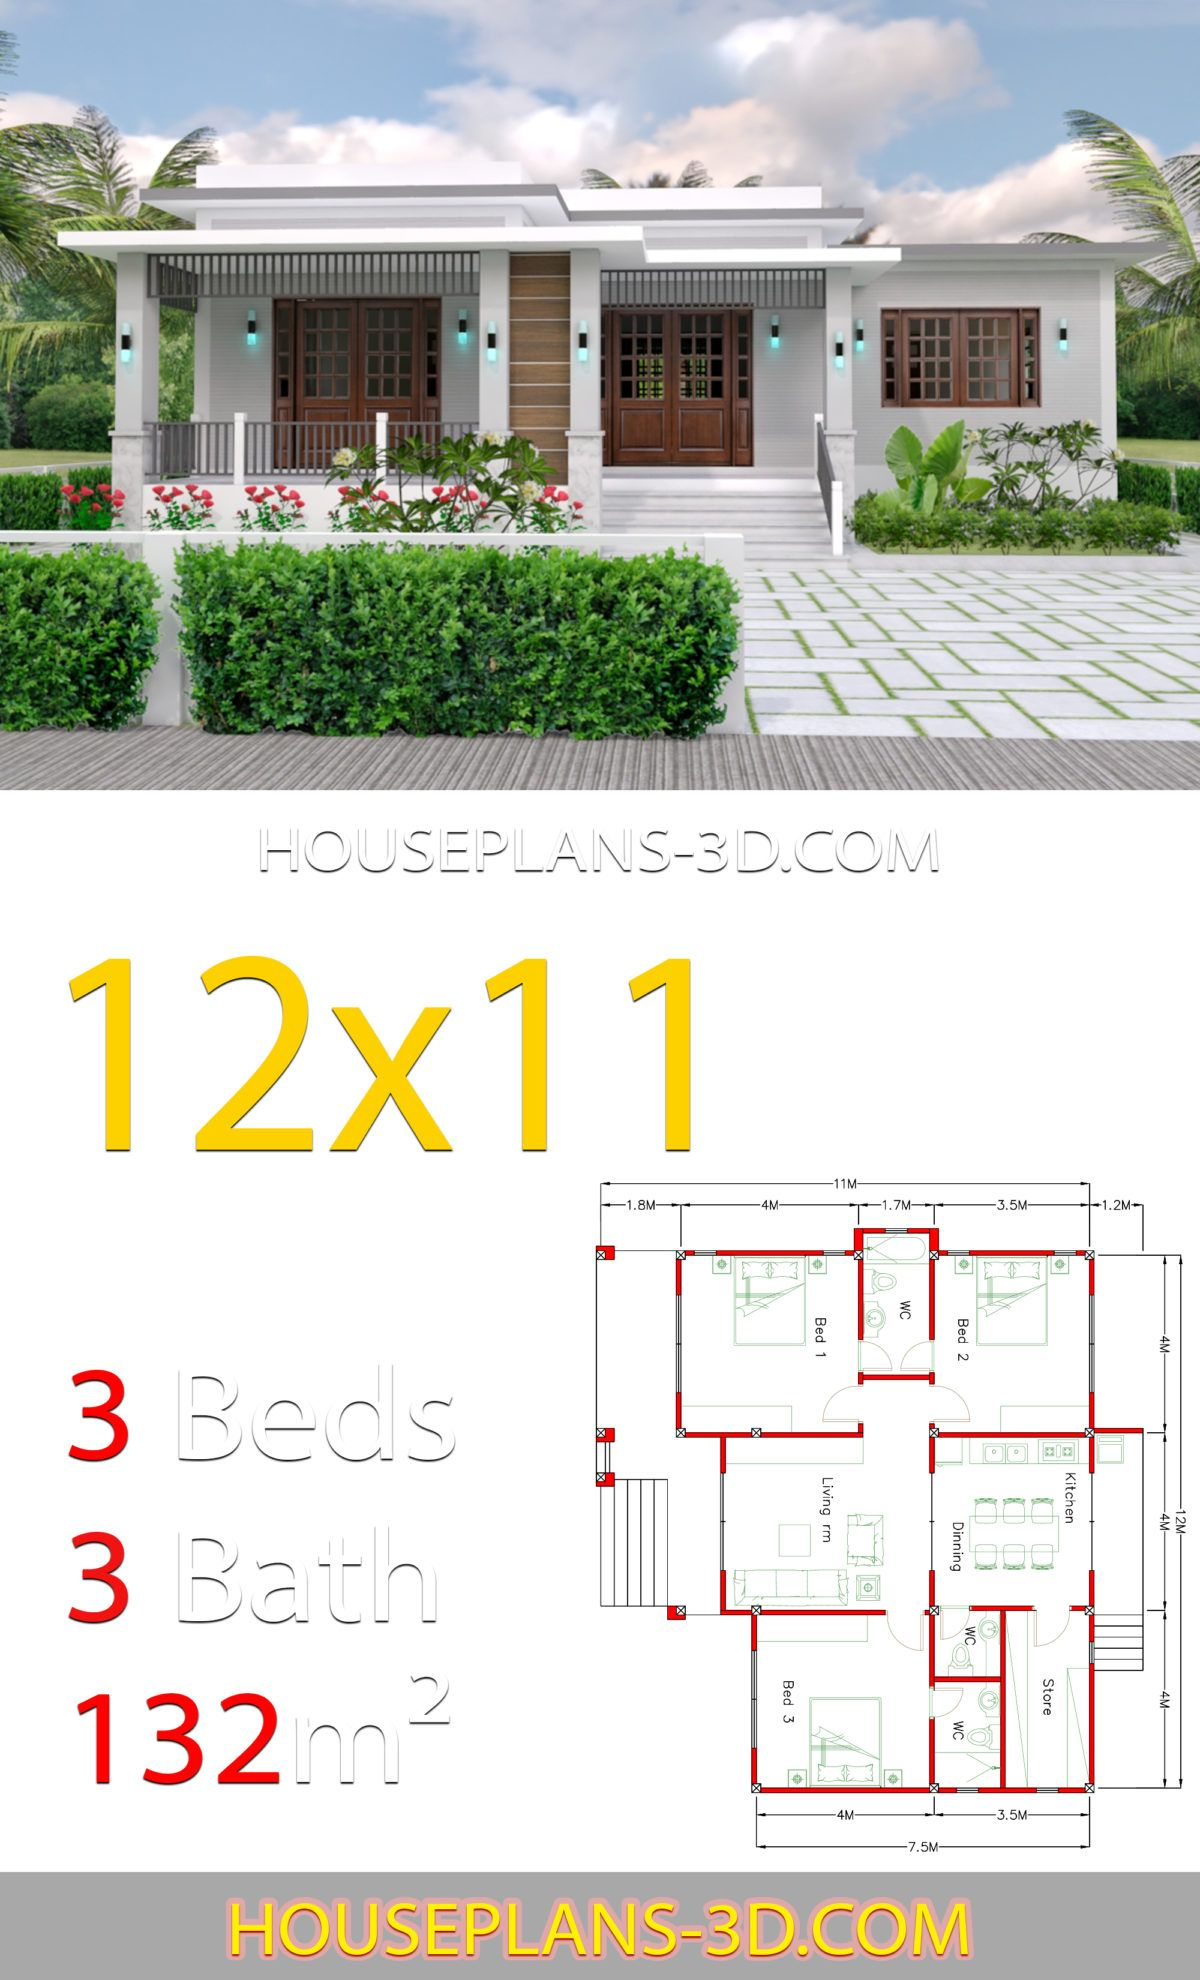 Home Design 12x11 With 3 Bedrooms Terrace Roof House Plans 3d House Plans House Layout Plans Beautiful House Plans